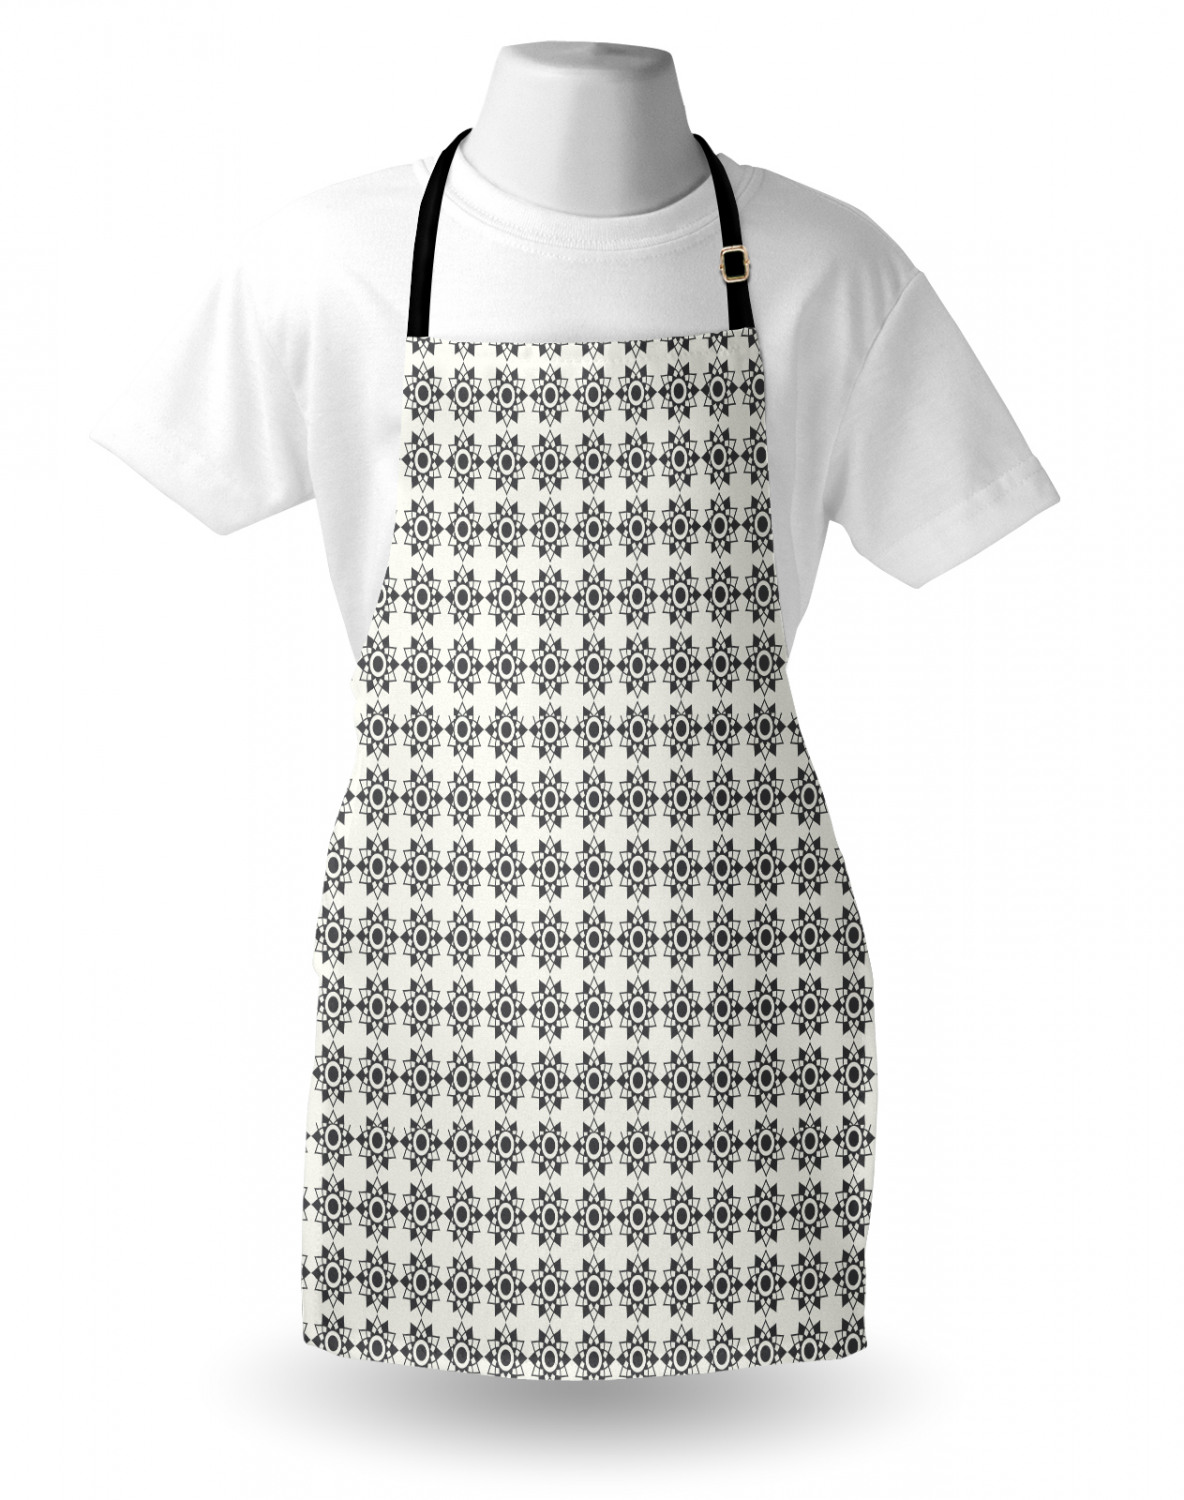 Ambesonne-Outdoor-Use-Apron-with-Adjustable-Neck-Strap-for-Gardening-and-Cooking miniatura 129